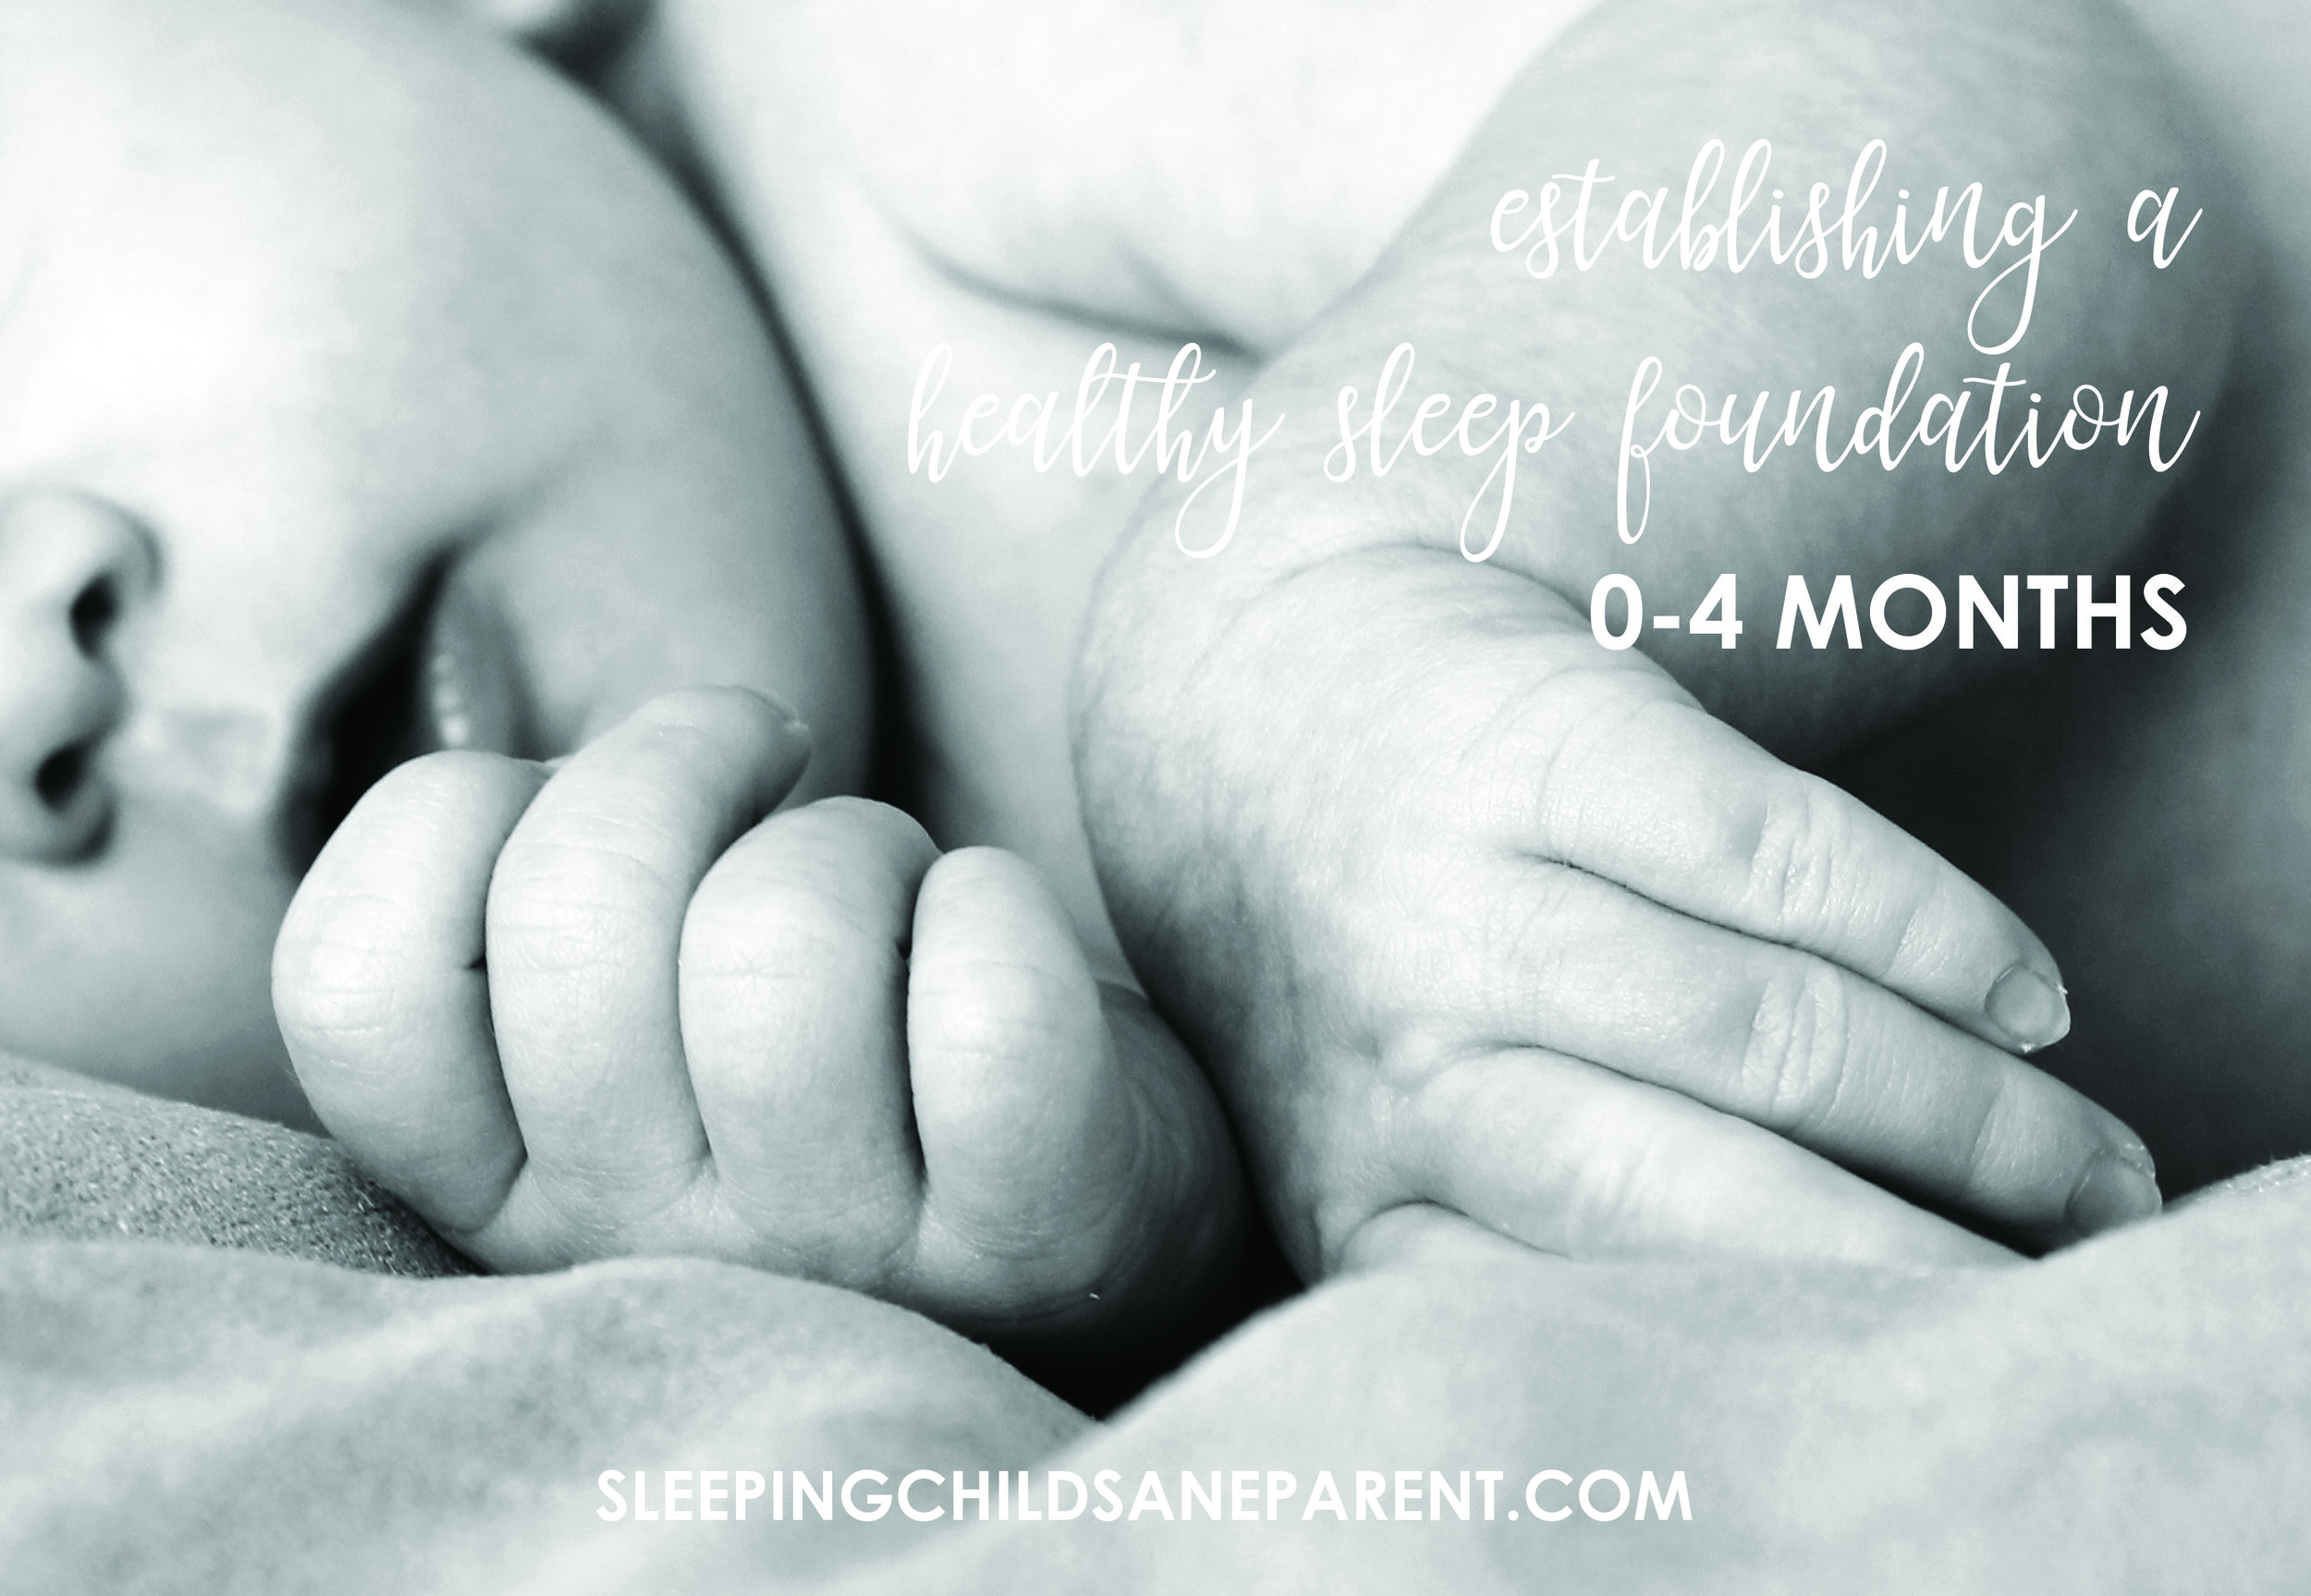 Babies undergo many tricky biological changes in the first few months of life. Knowing what to expect and establishing a healthy sleep foundation can help you navigate the newborn stage much more easily.